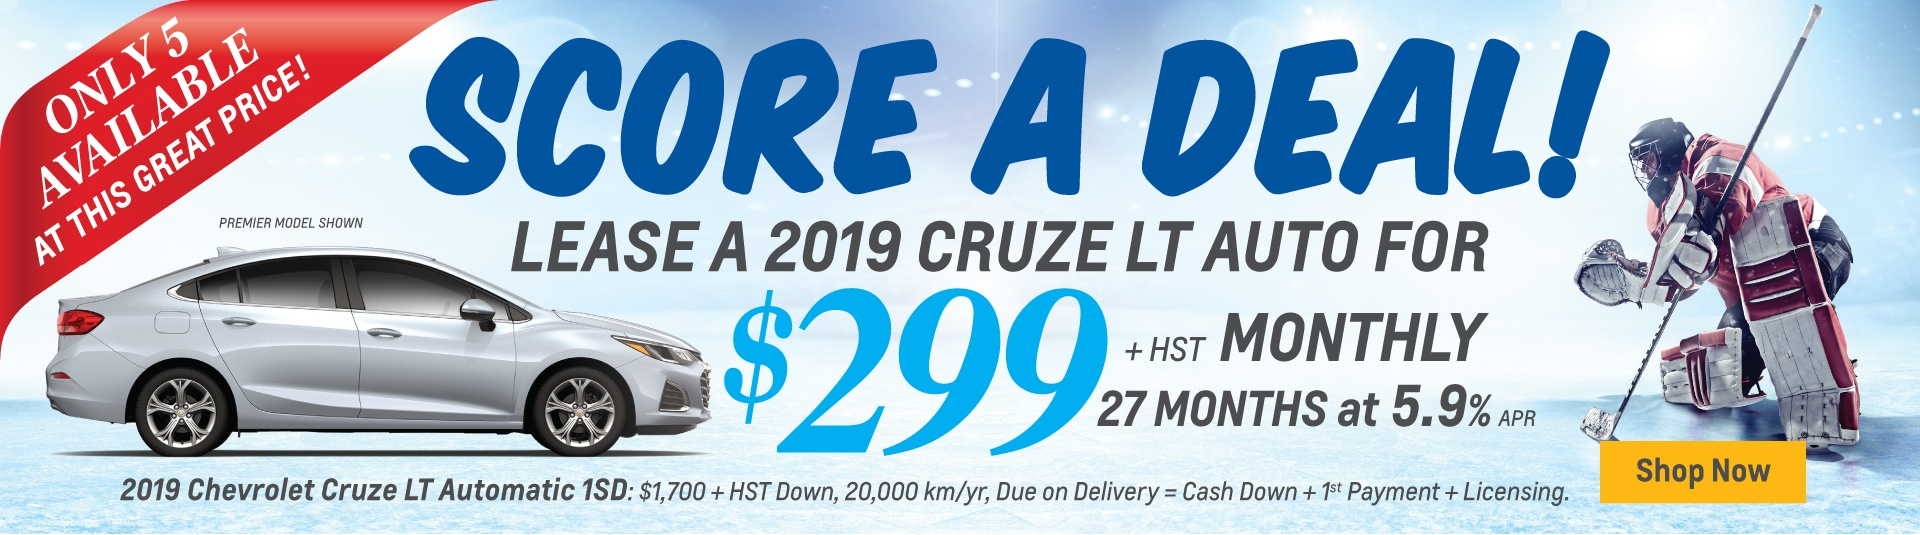 2019 Chevrolet Cruze Exclusive Lease Offer in Mississauga